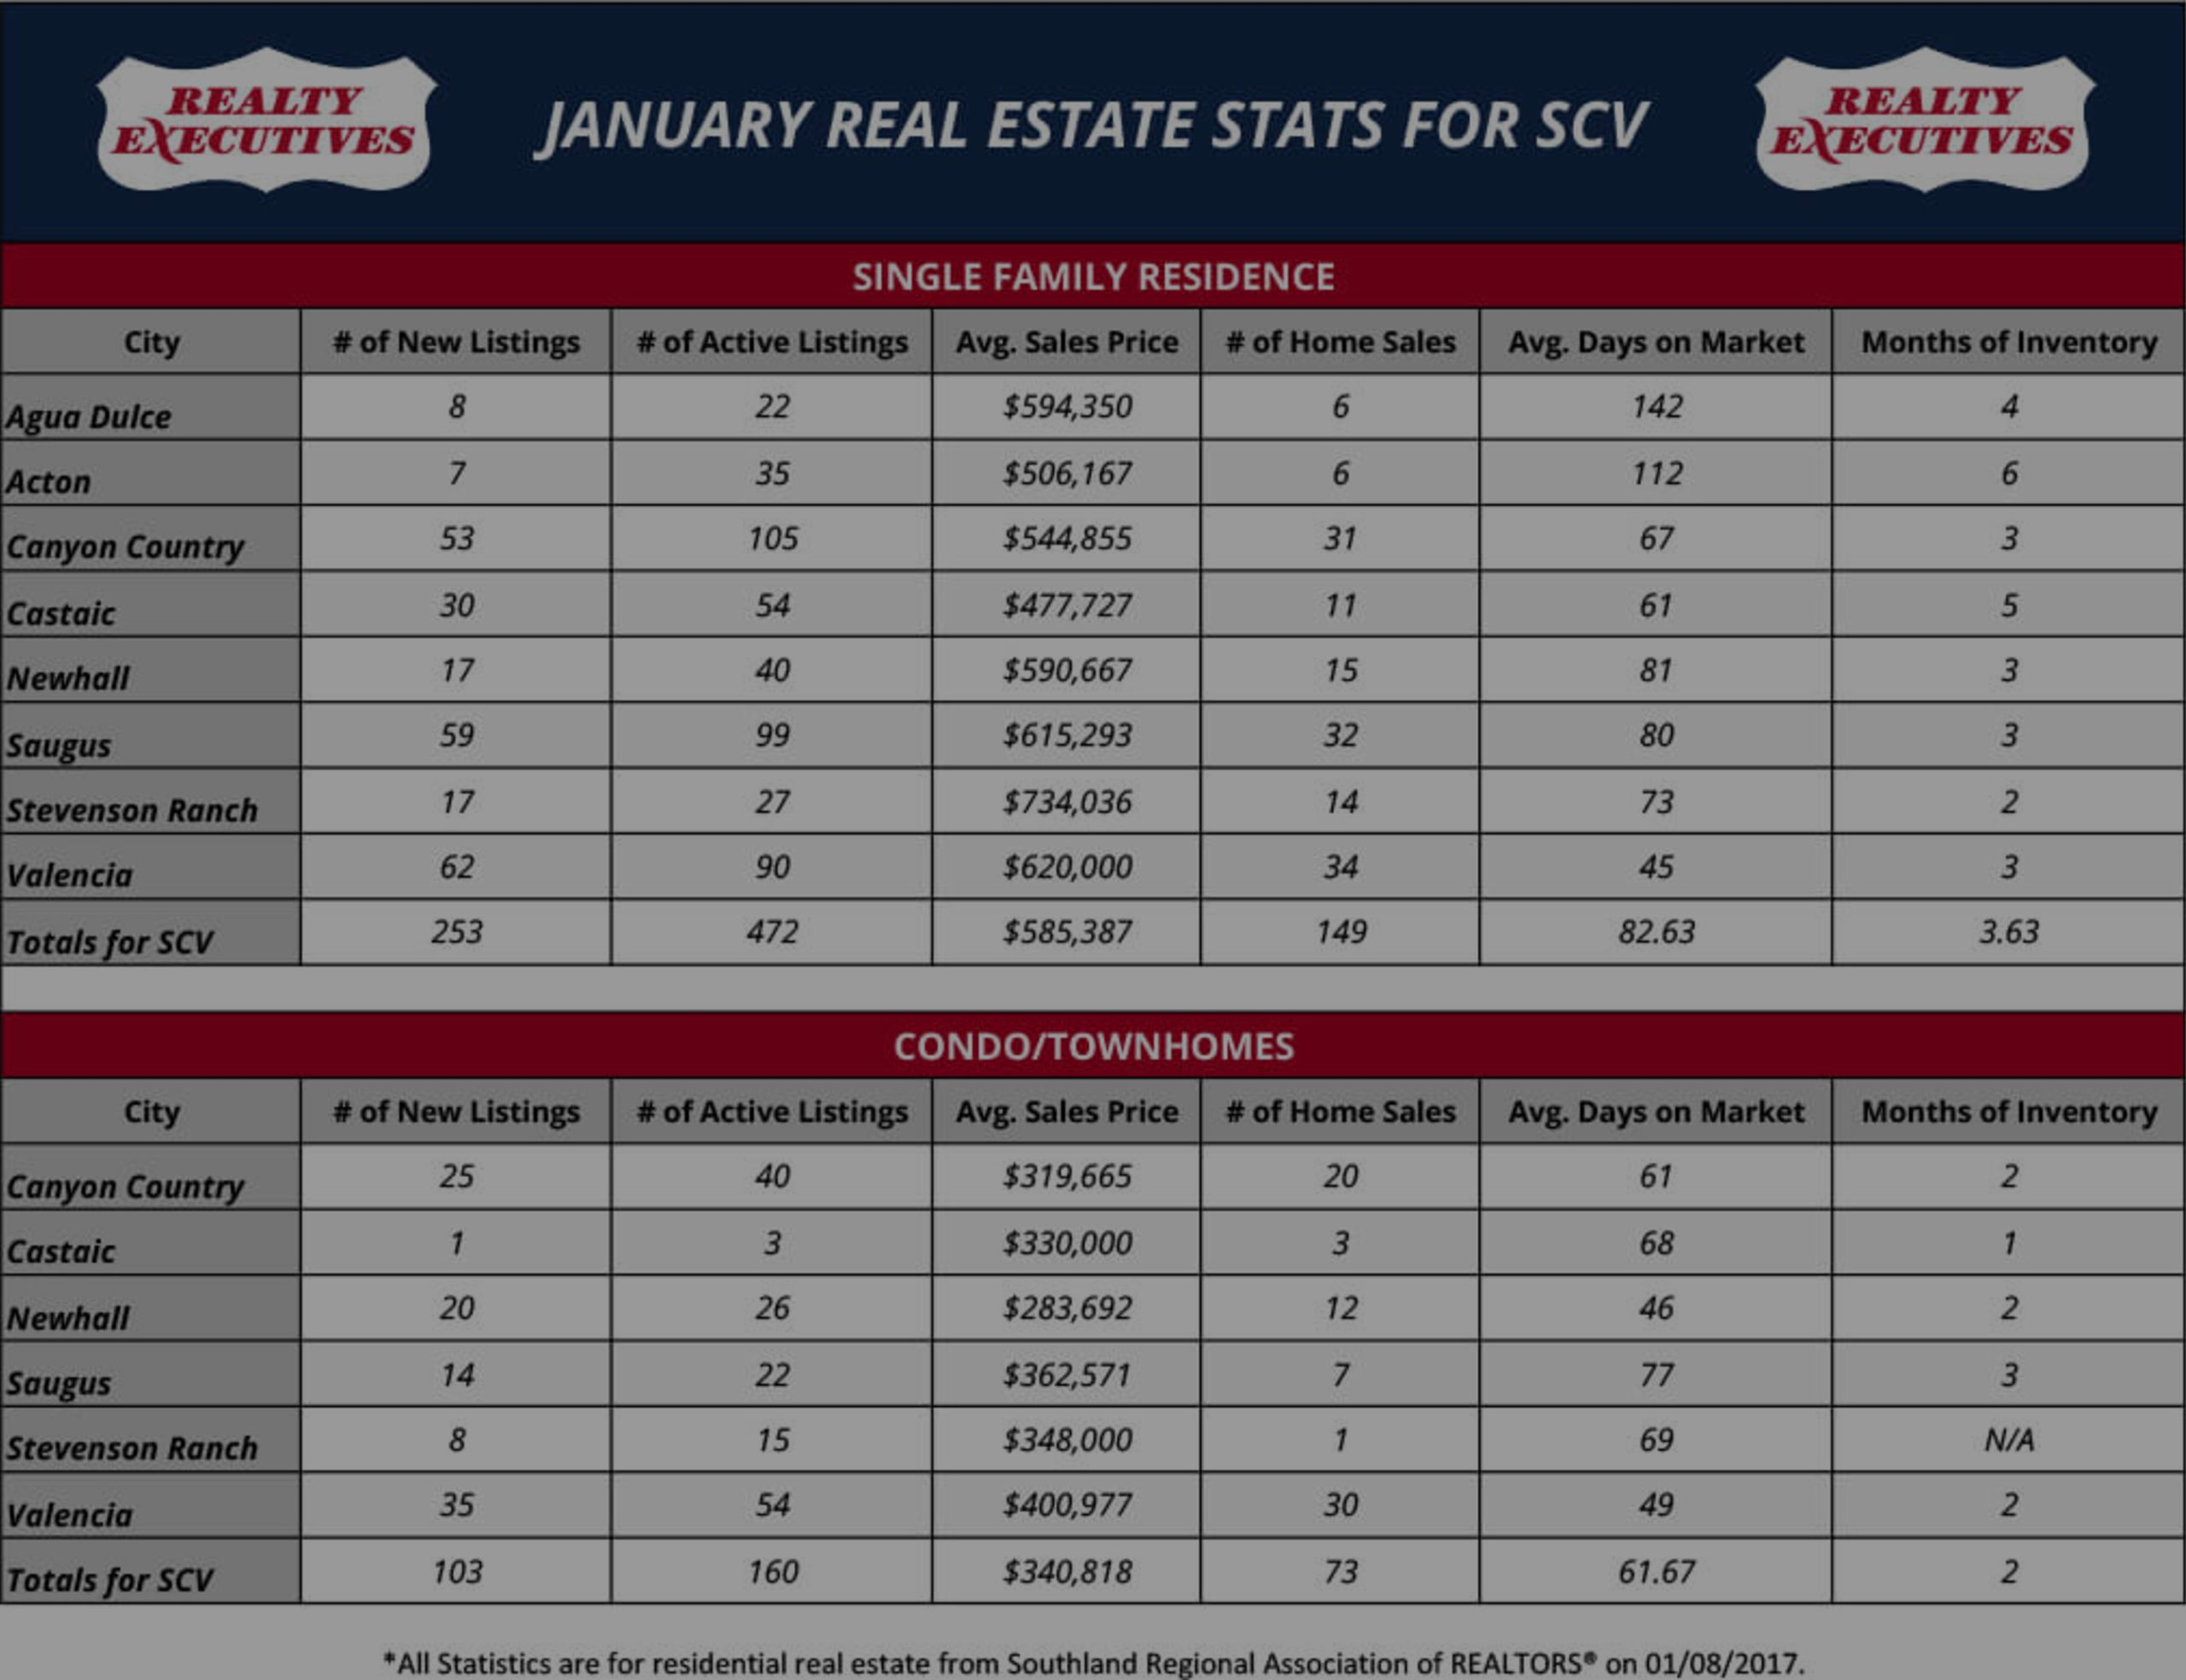 January 2017: Santa Clarita Real Estate Market Statistics